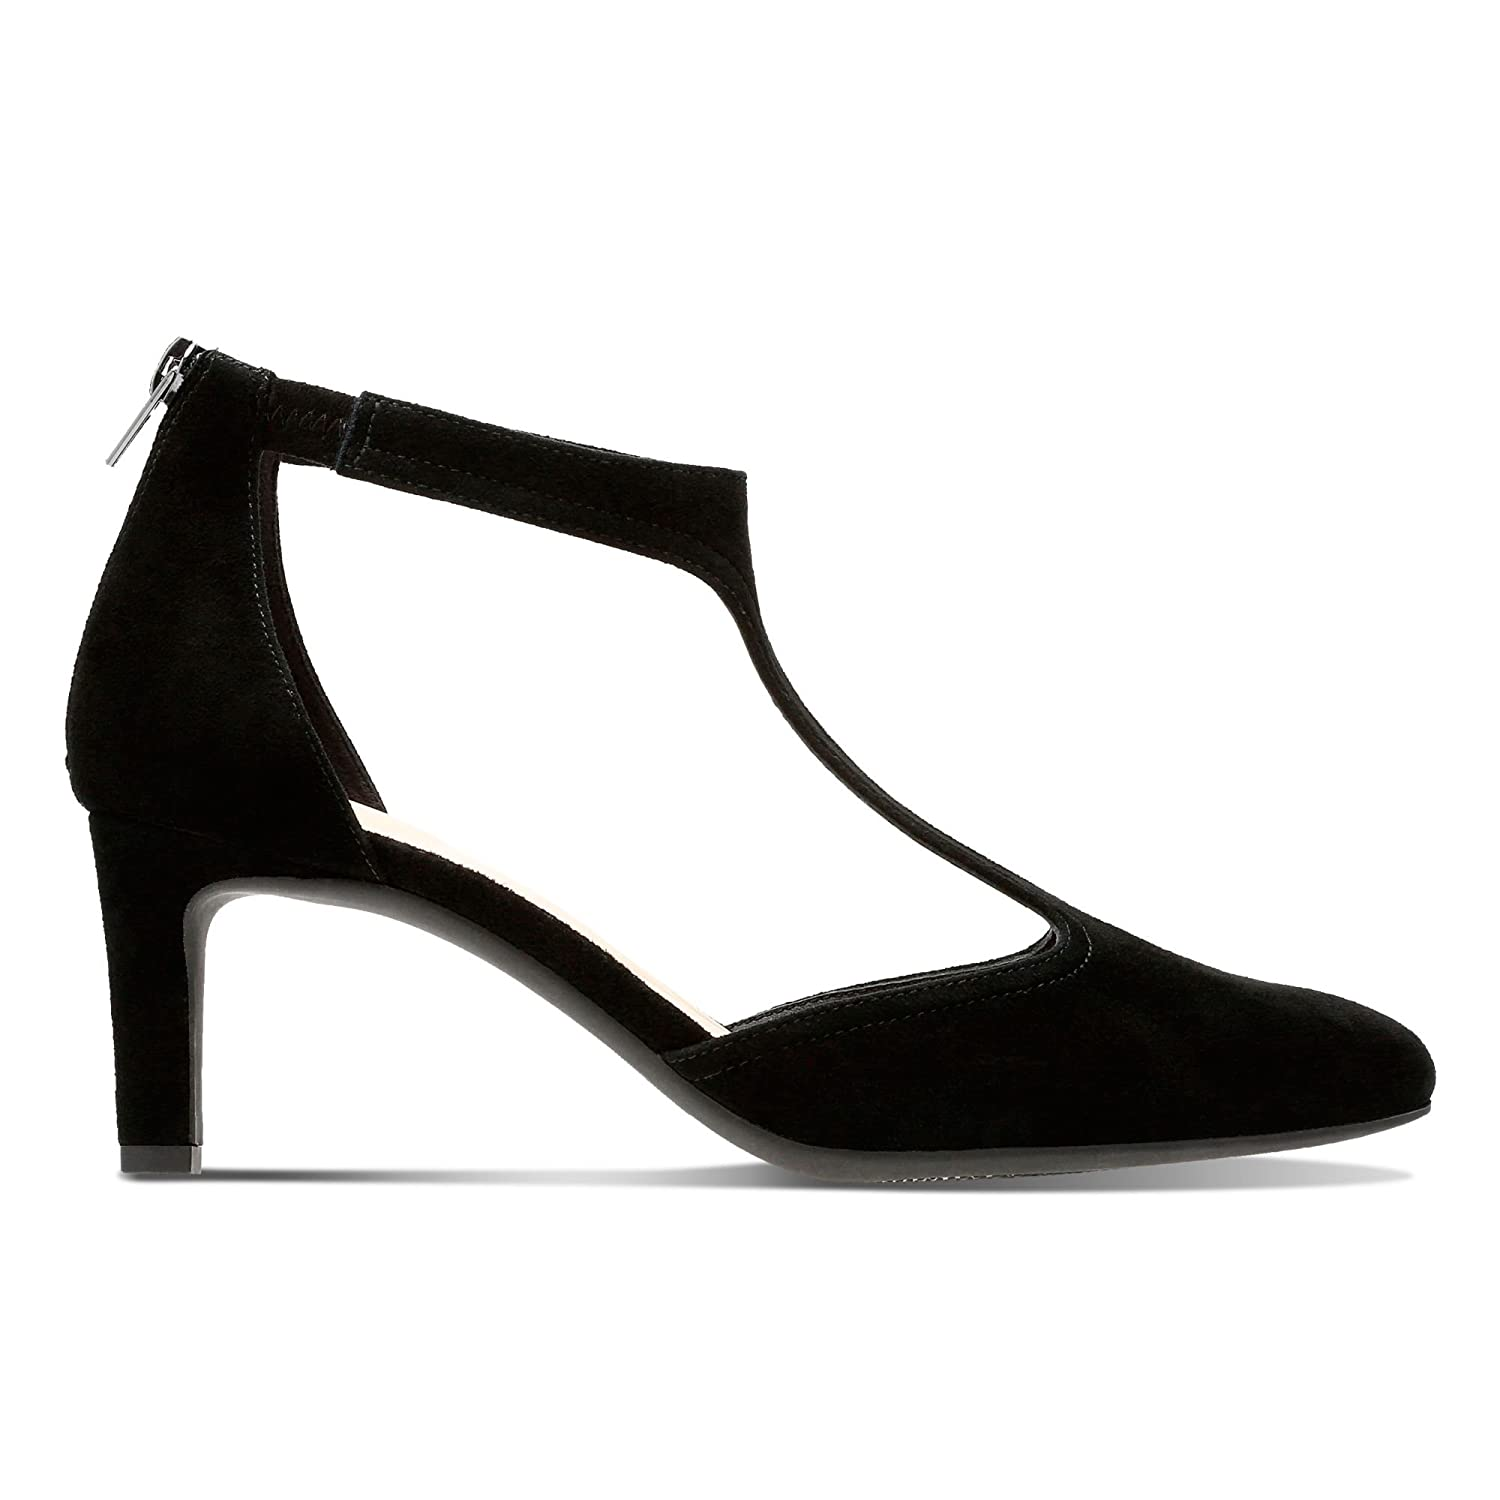 7c17cfe7 Clarks Calla Lily Suede Shoes in Black: Amazon.co.uk: Shoes & Bags